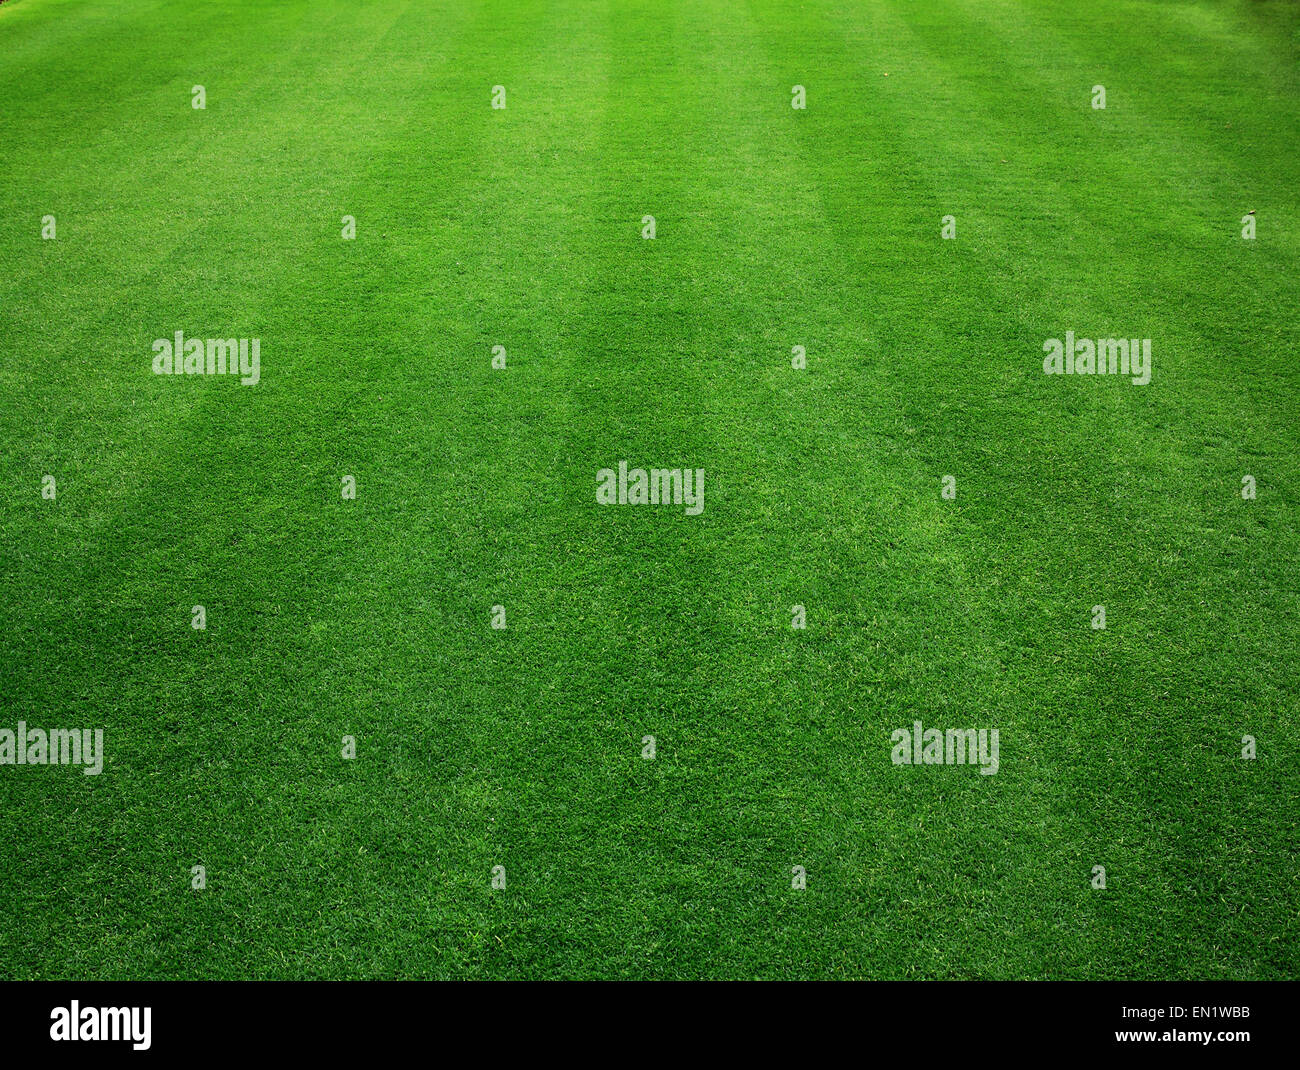 Golf green grass background texture pattern nature. - Stock Image